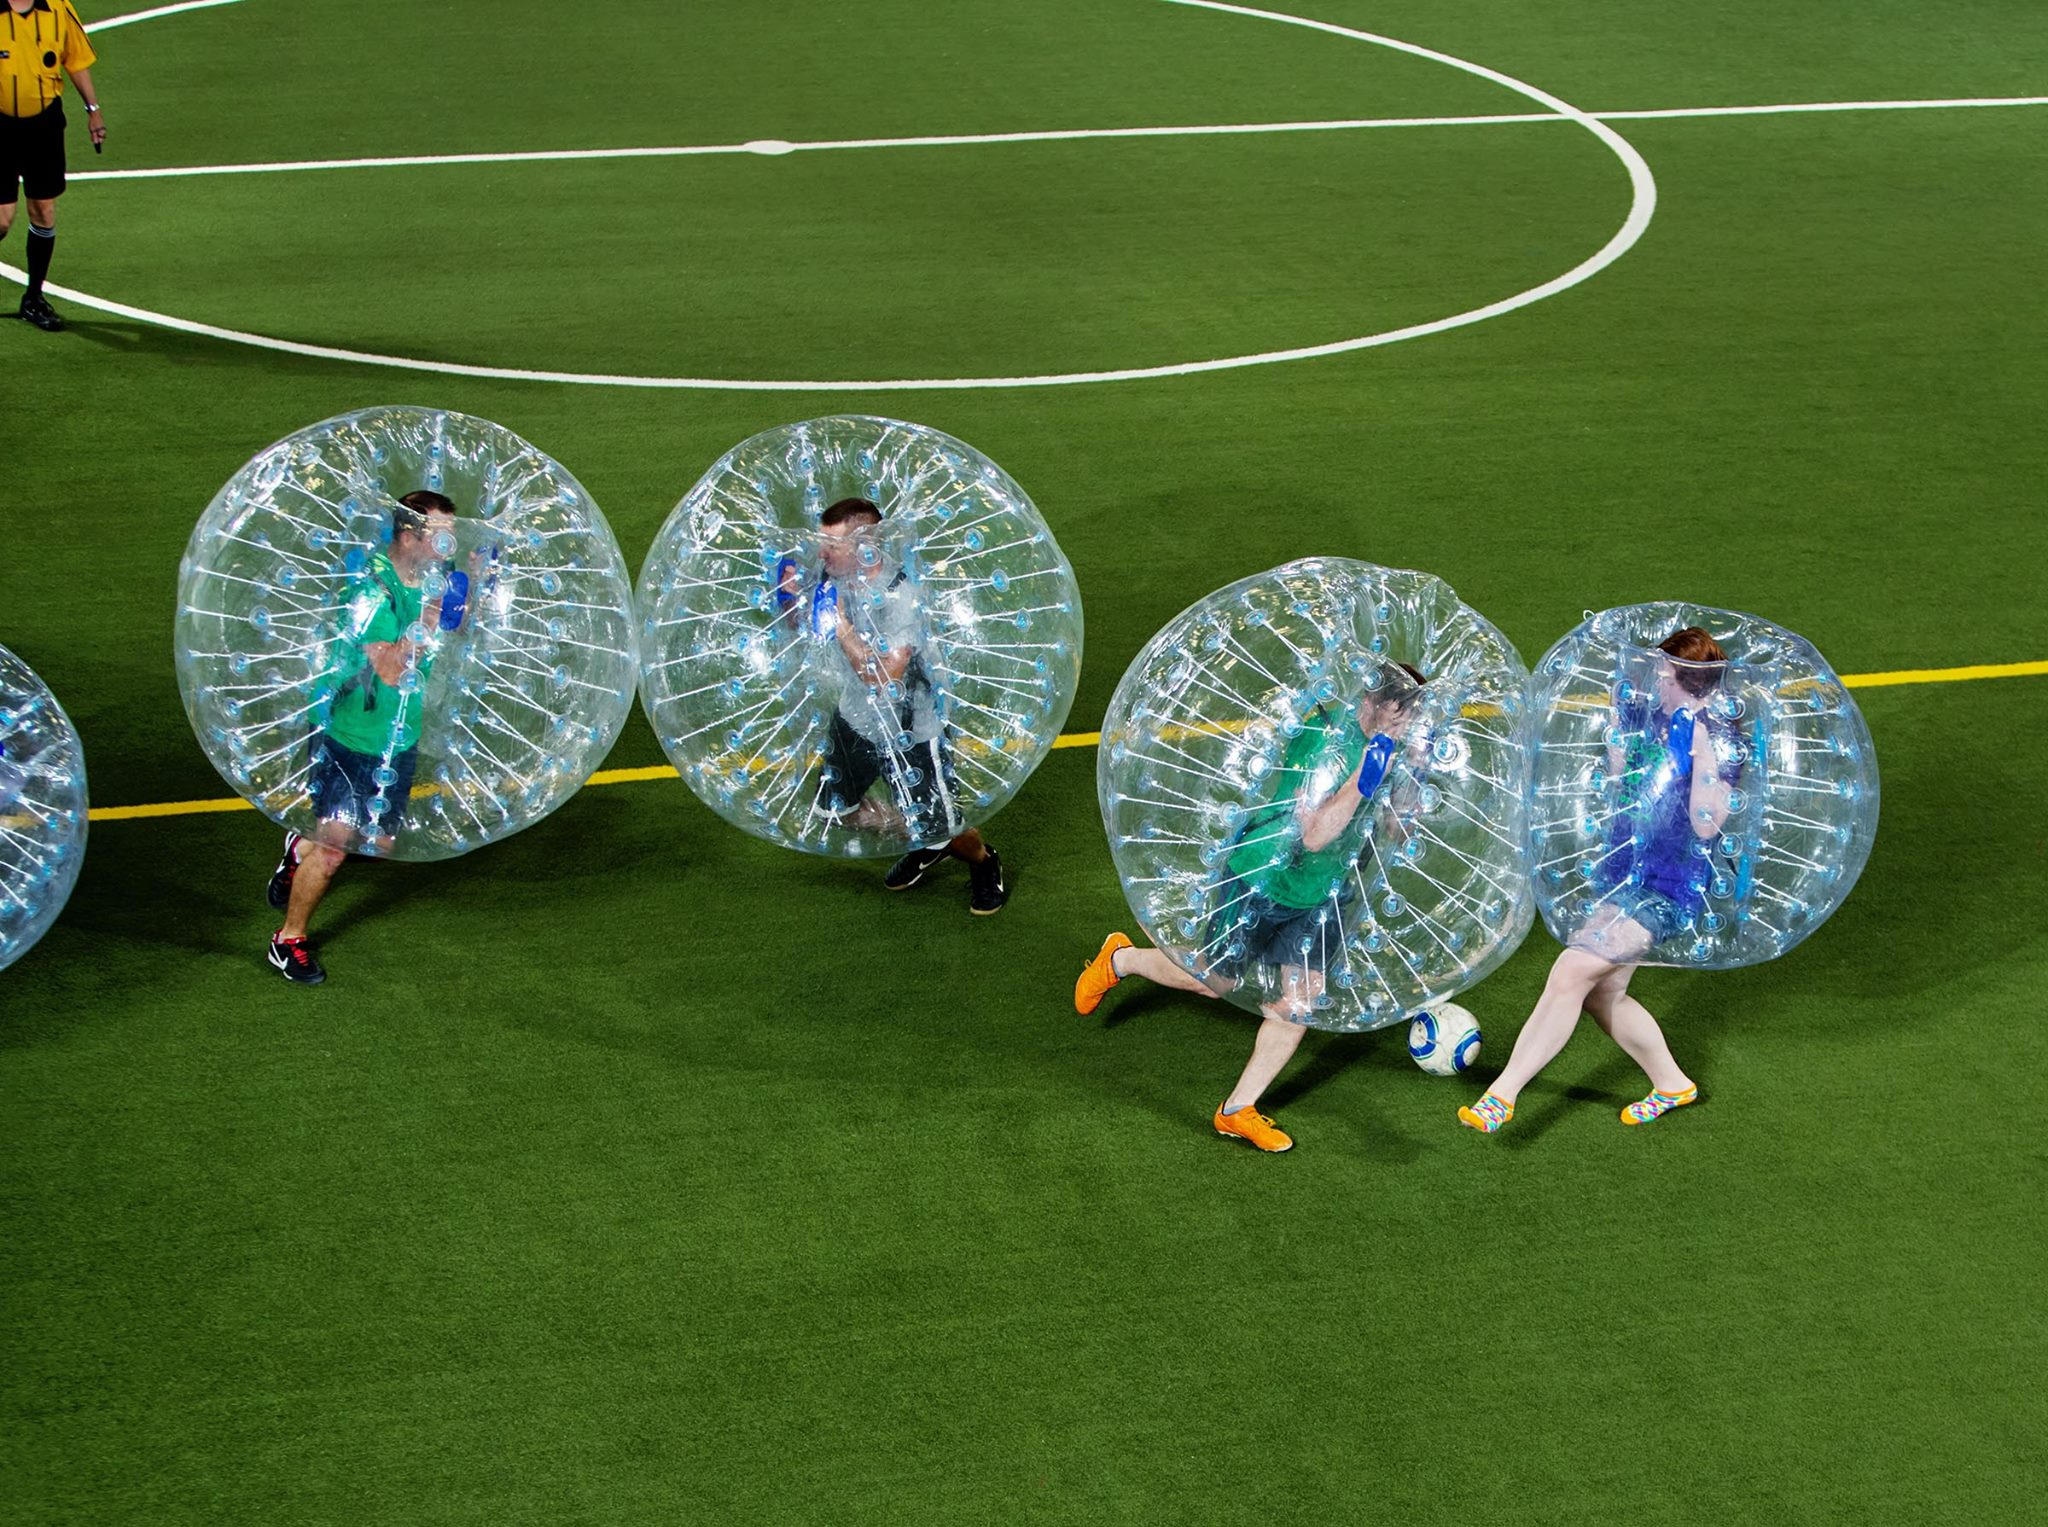 BISC-bubble-soccer